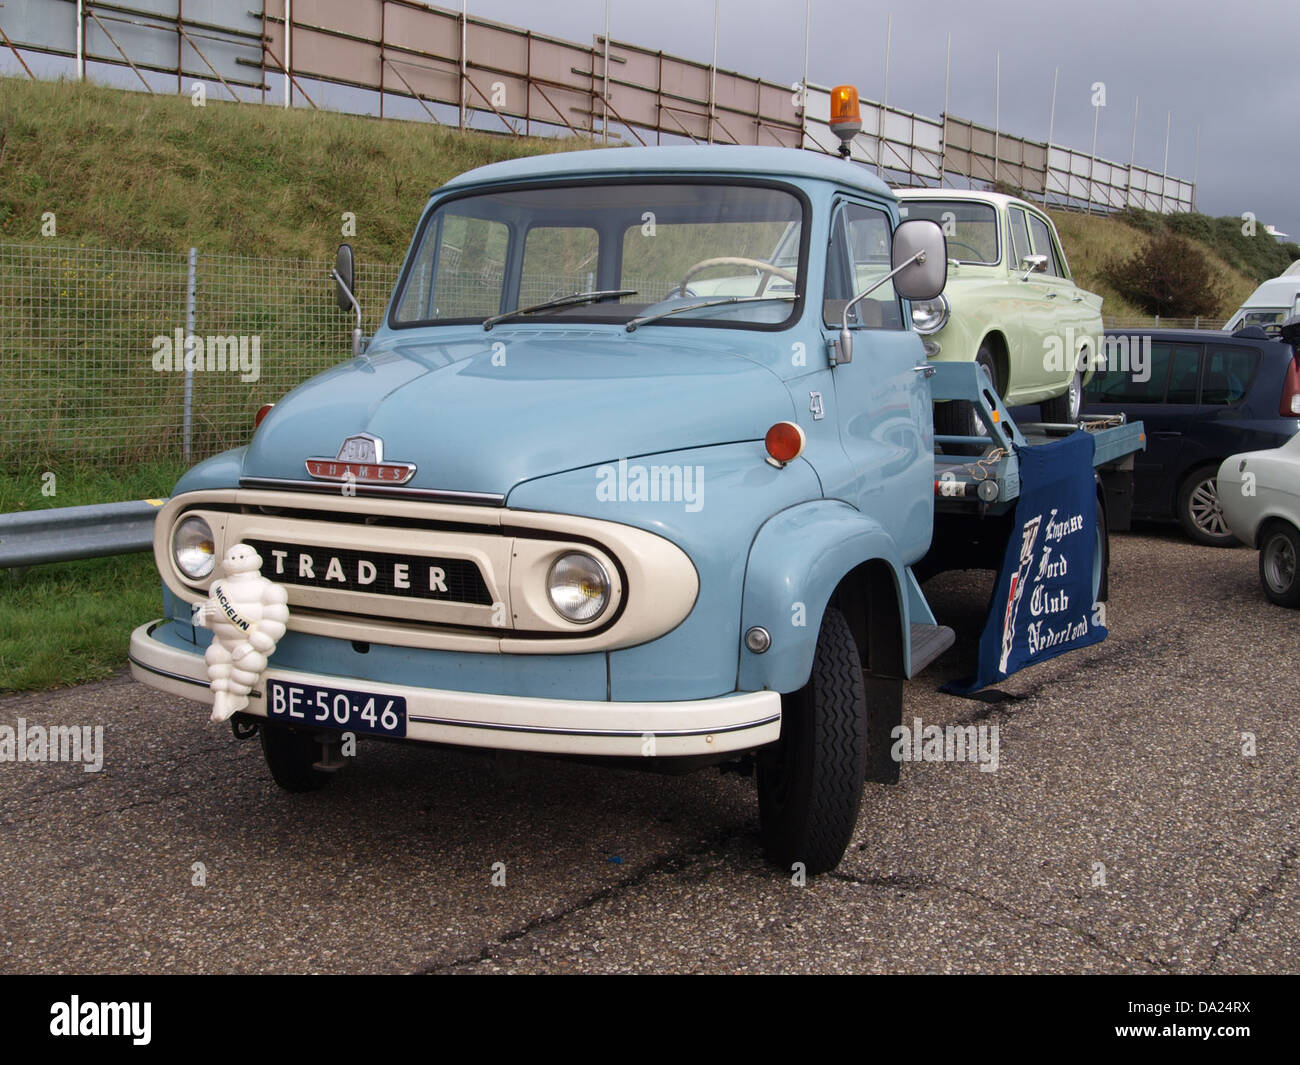 Ford Thames Stock Photos & Ford Thames Stock Images - Alamy